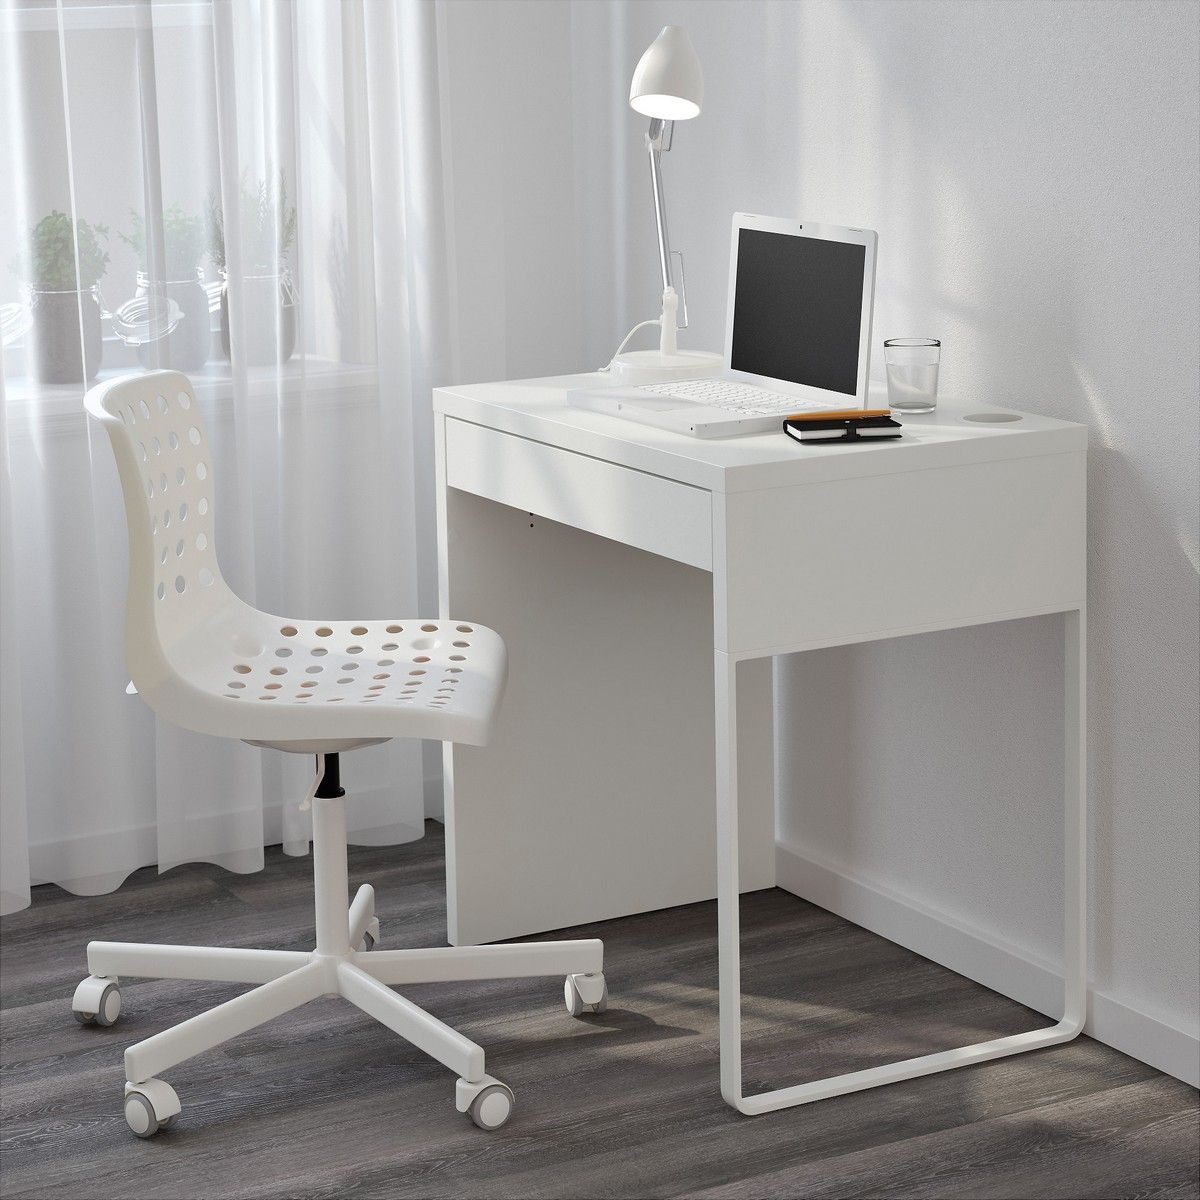 Narrow Computer Desk Ikea Micke White For Small Space Minimalist